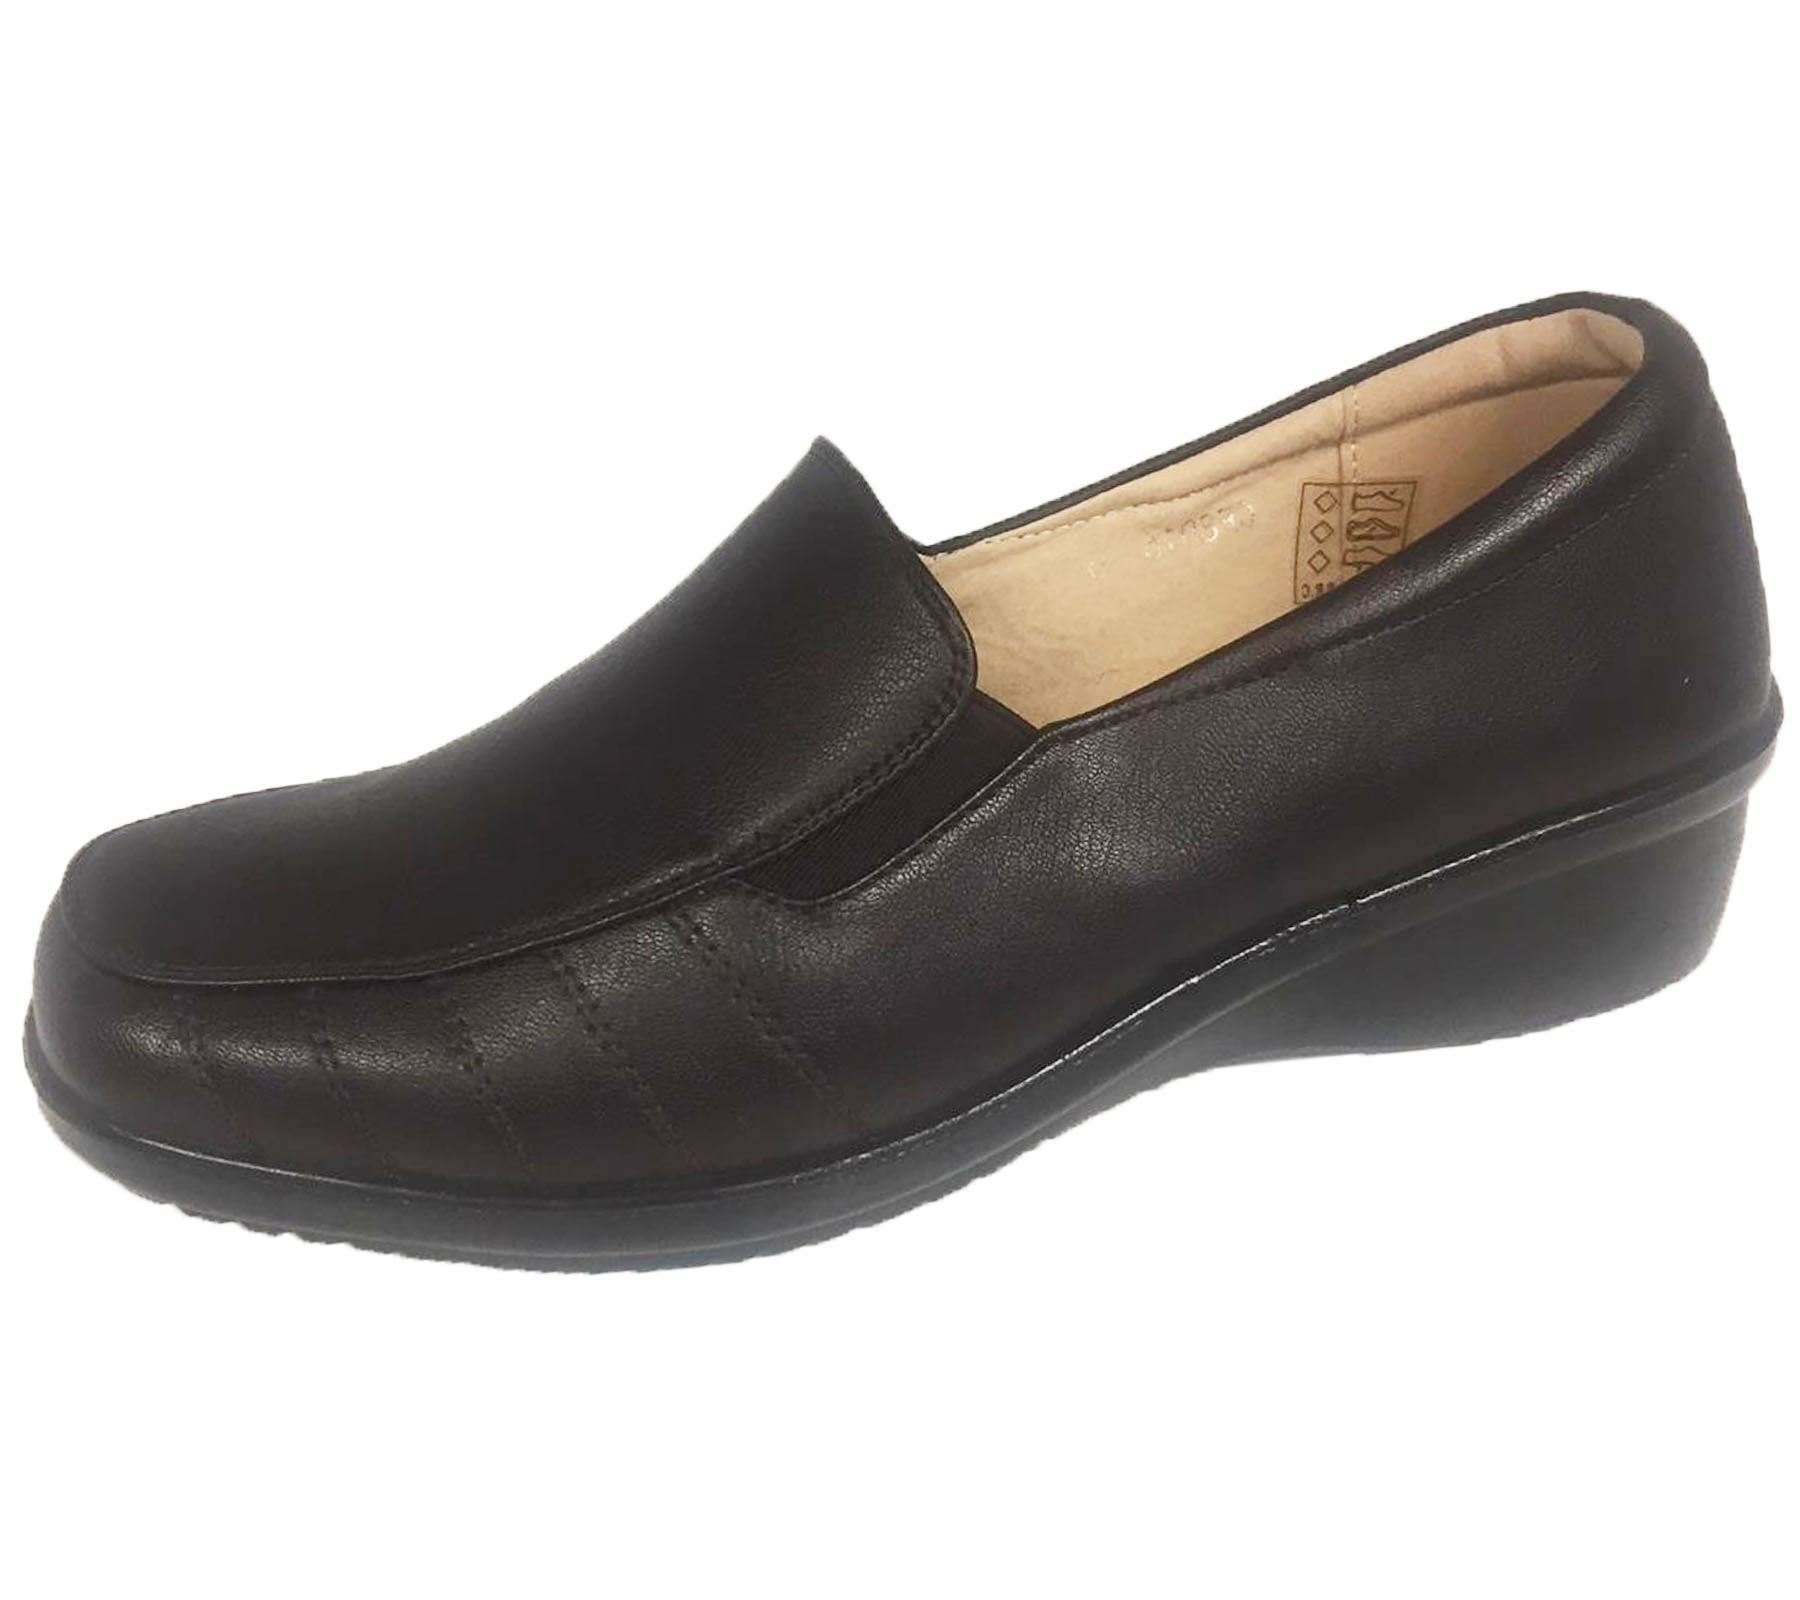 Ladies-Loafer-Moccasin-Womens-Casual-Comfort-Walk-Pumps-Slip-On-Shoes thumbnail 10